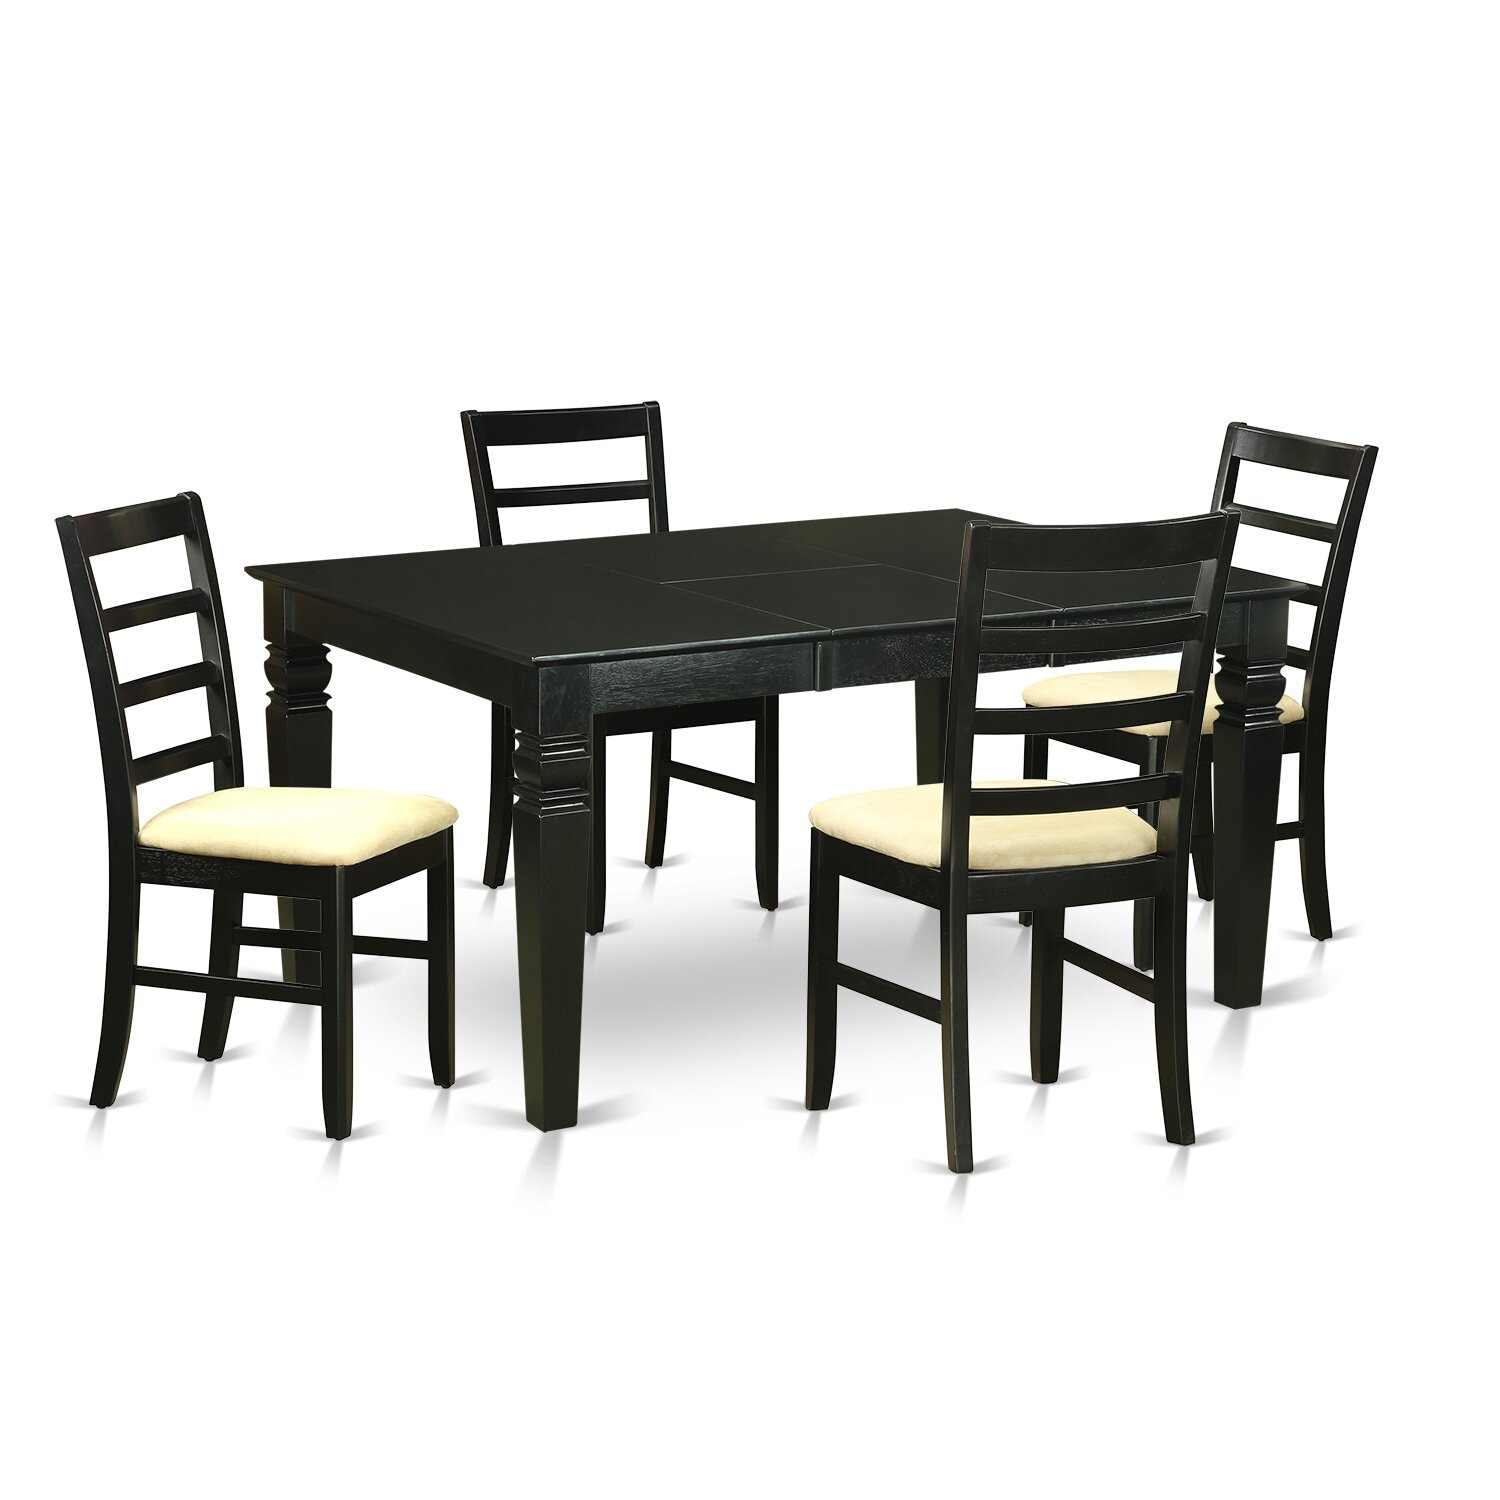 Wooden importers weston 5 piece dining set wayfair for Small table and stool set